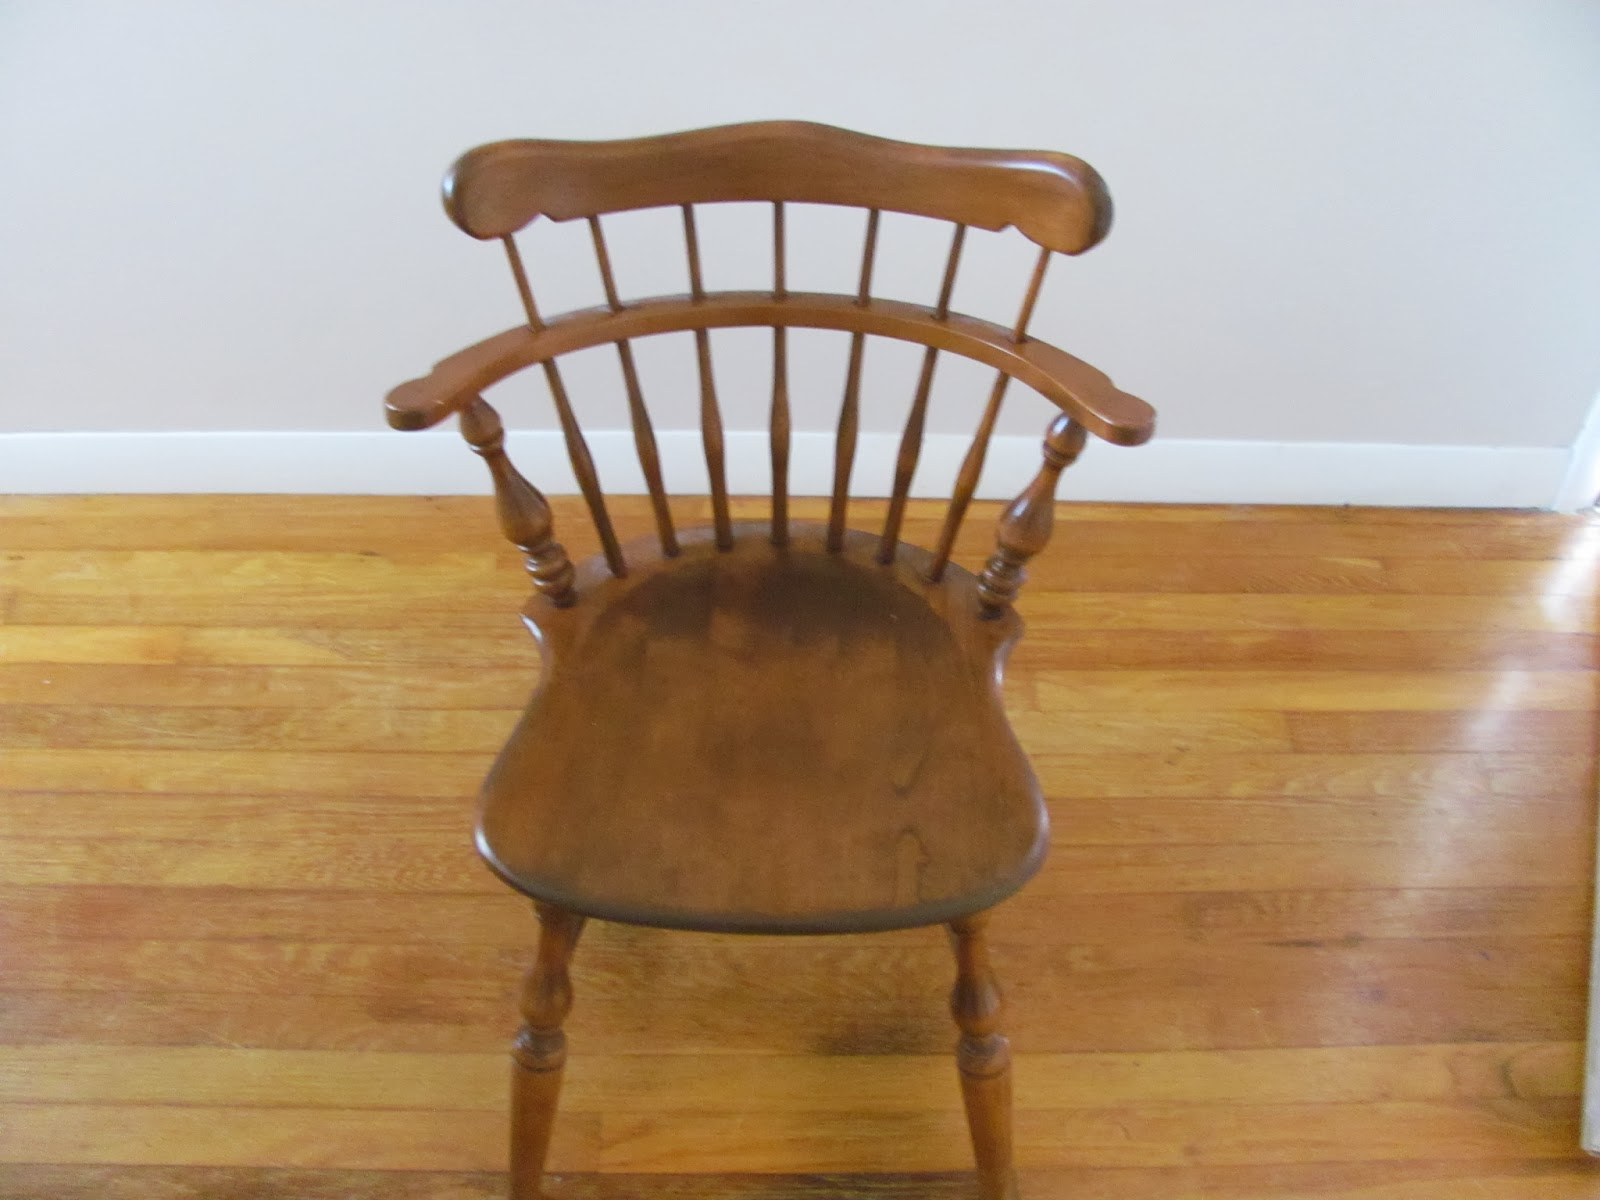 Chair from Ethan Allen dining set before being sold on Craigslist